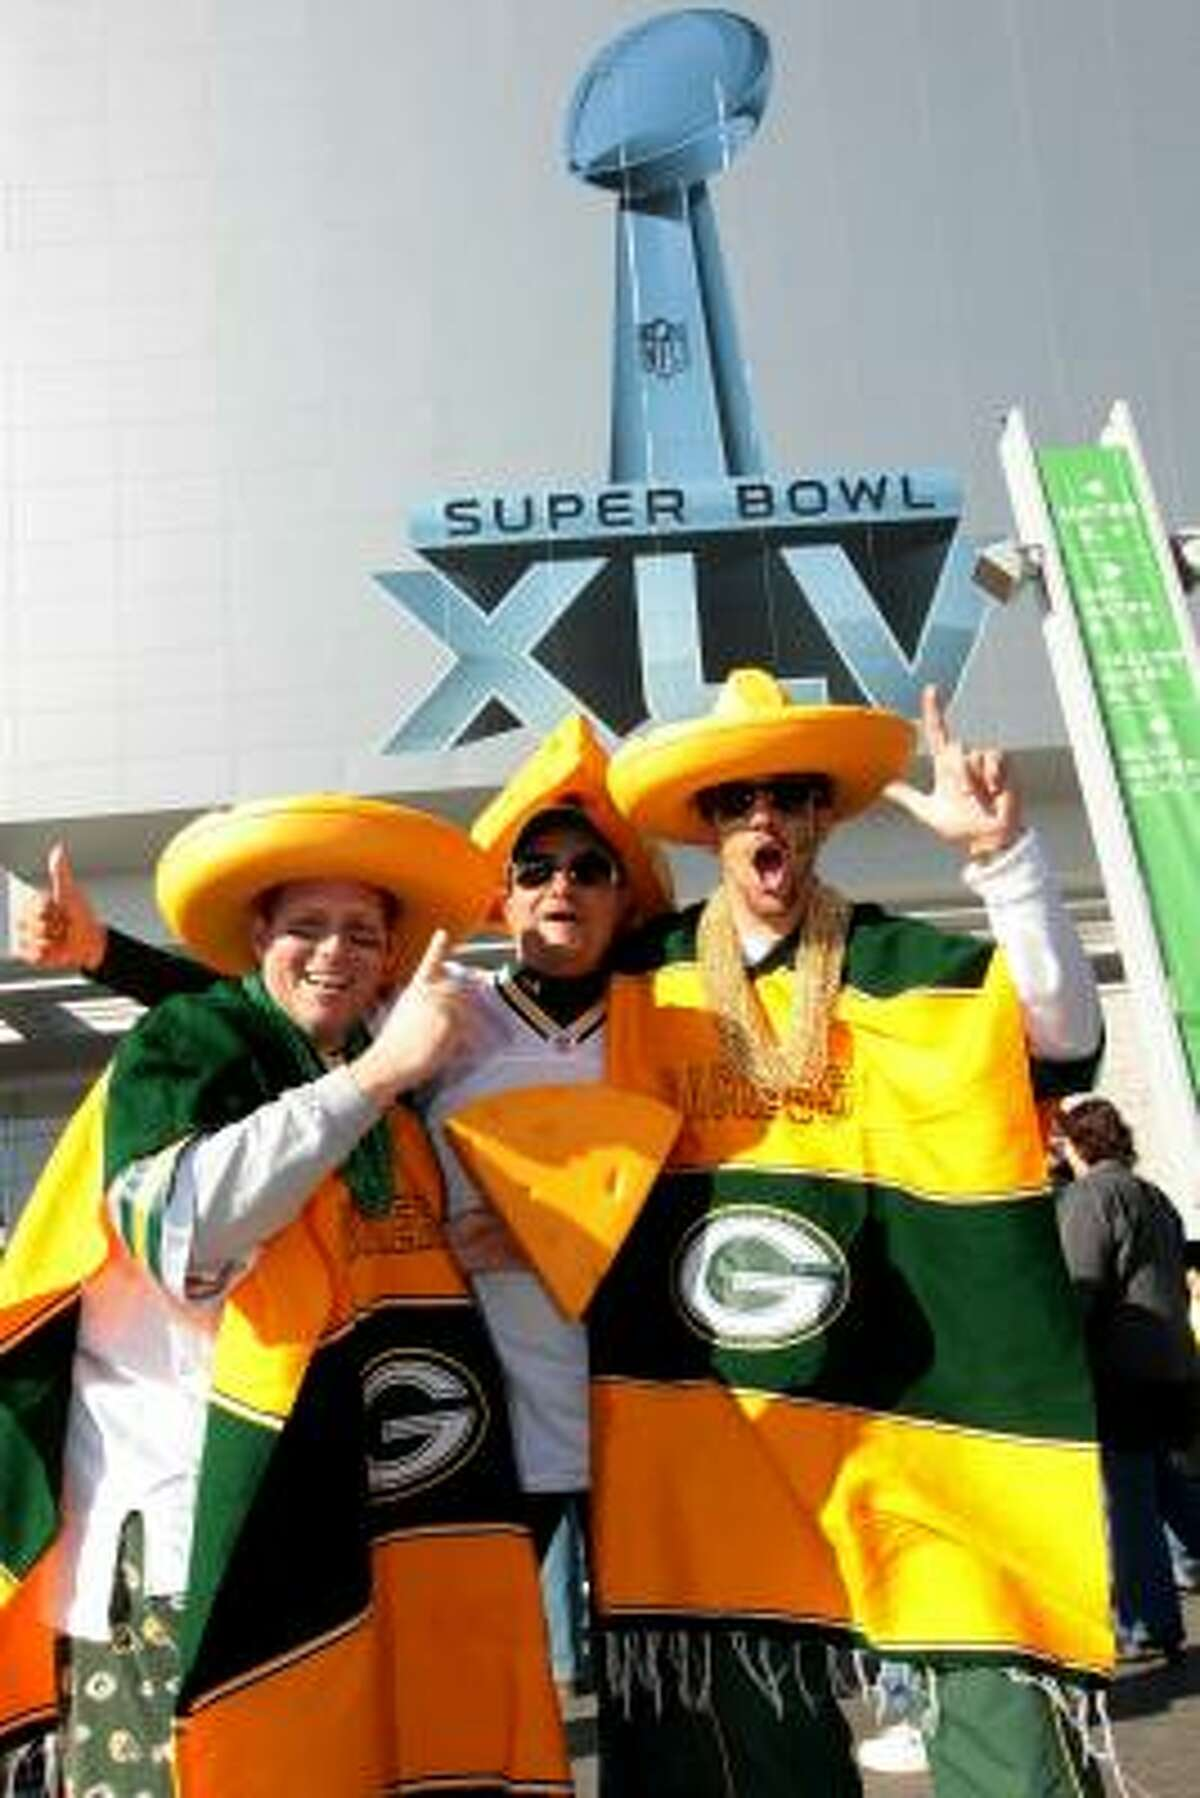 Packers fans take a Southern approach to their wardrobes.